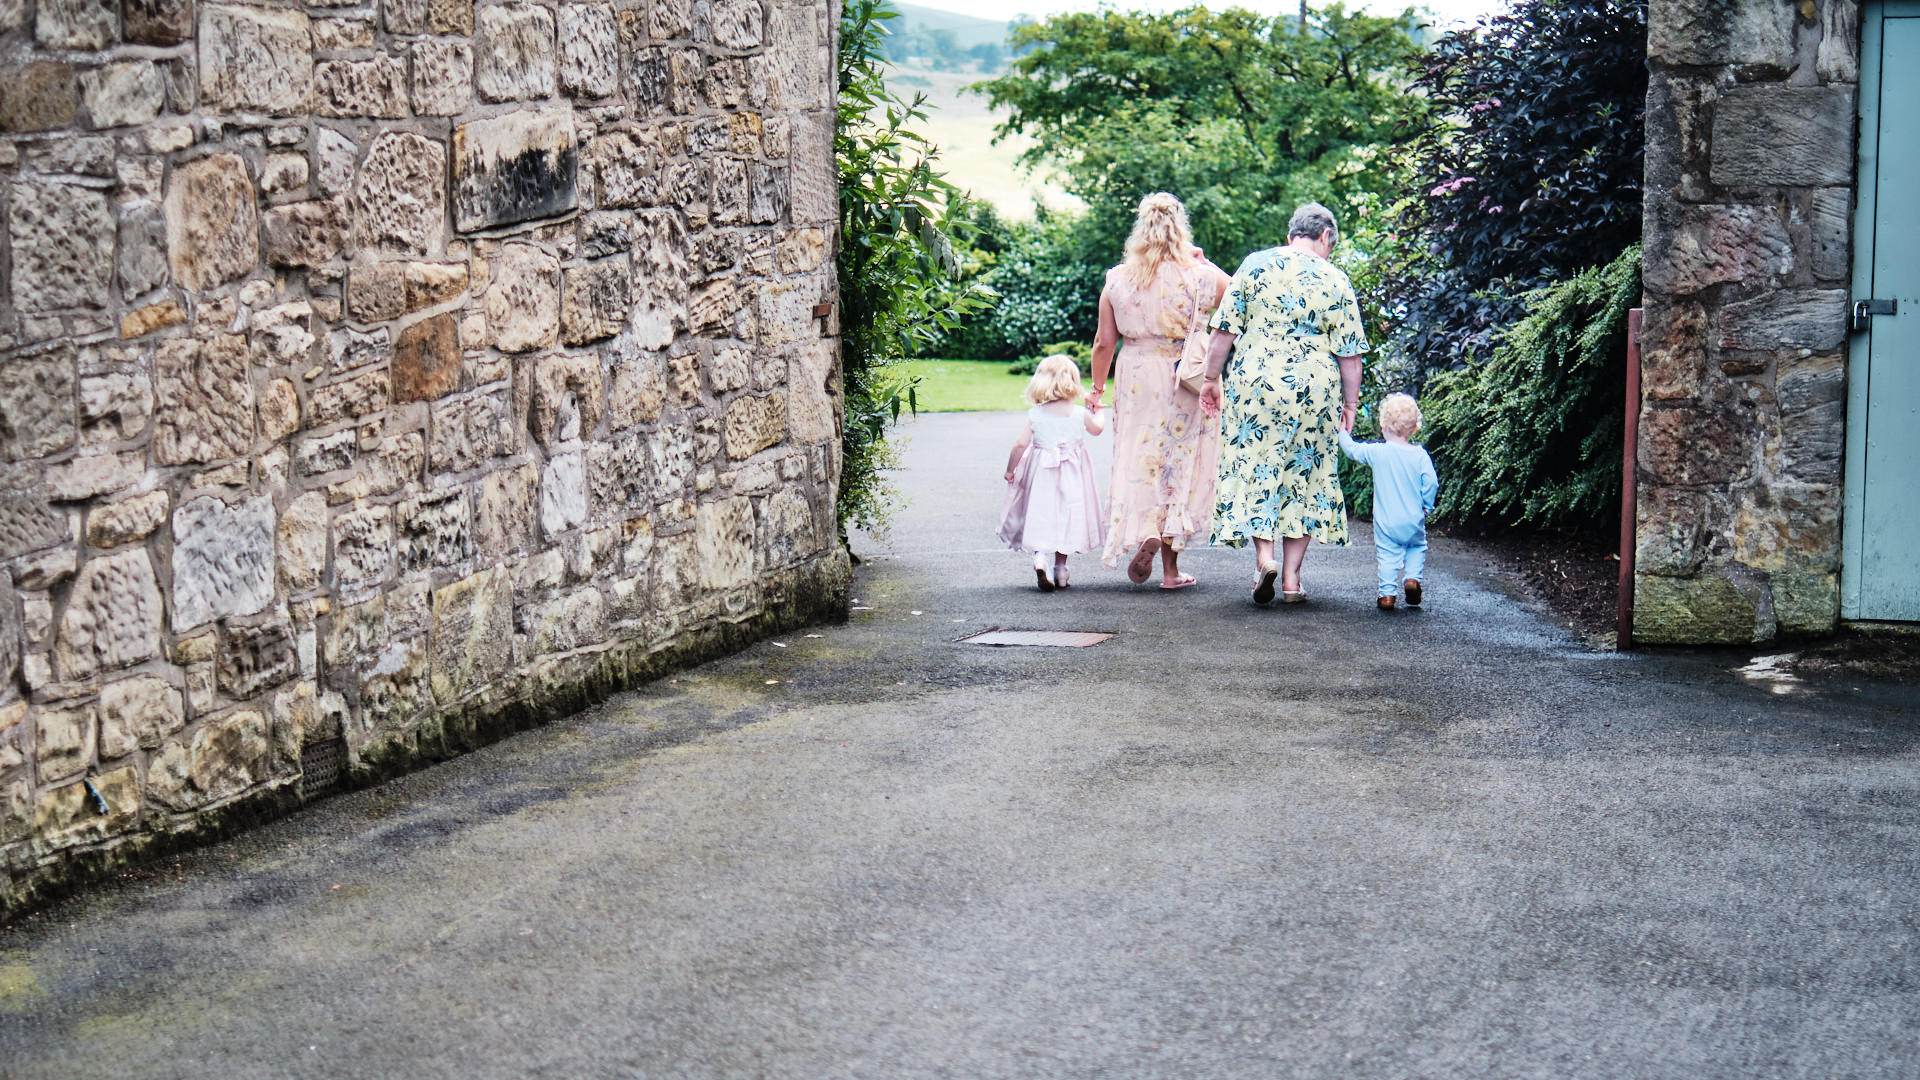 colour photograph of wedding guests photographer from behind while walking hand in hand with small children